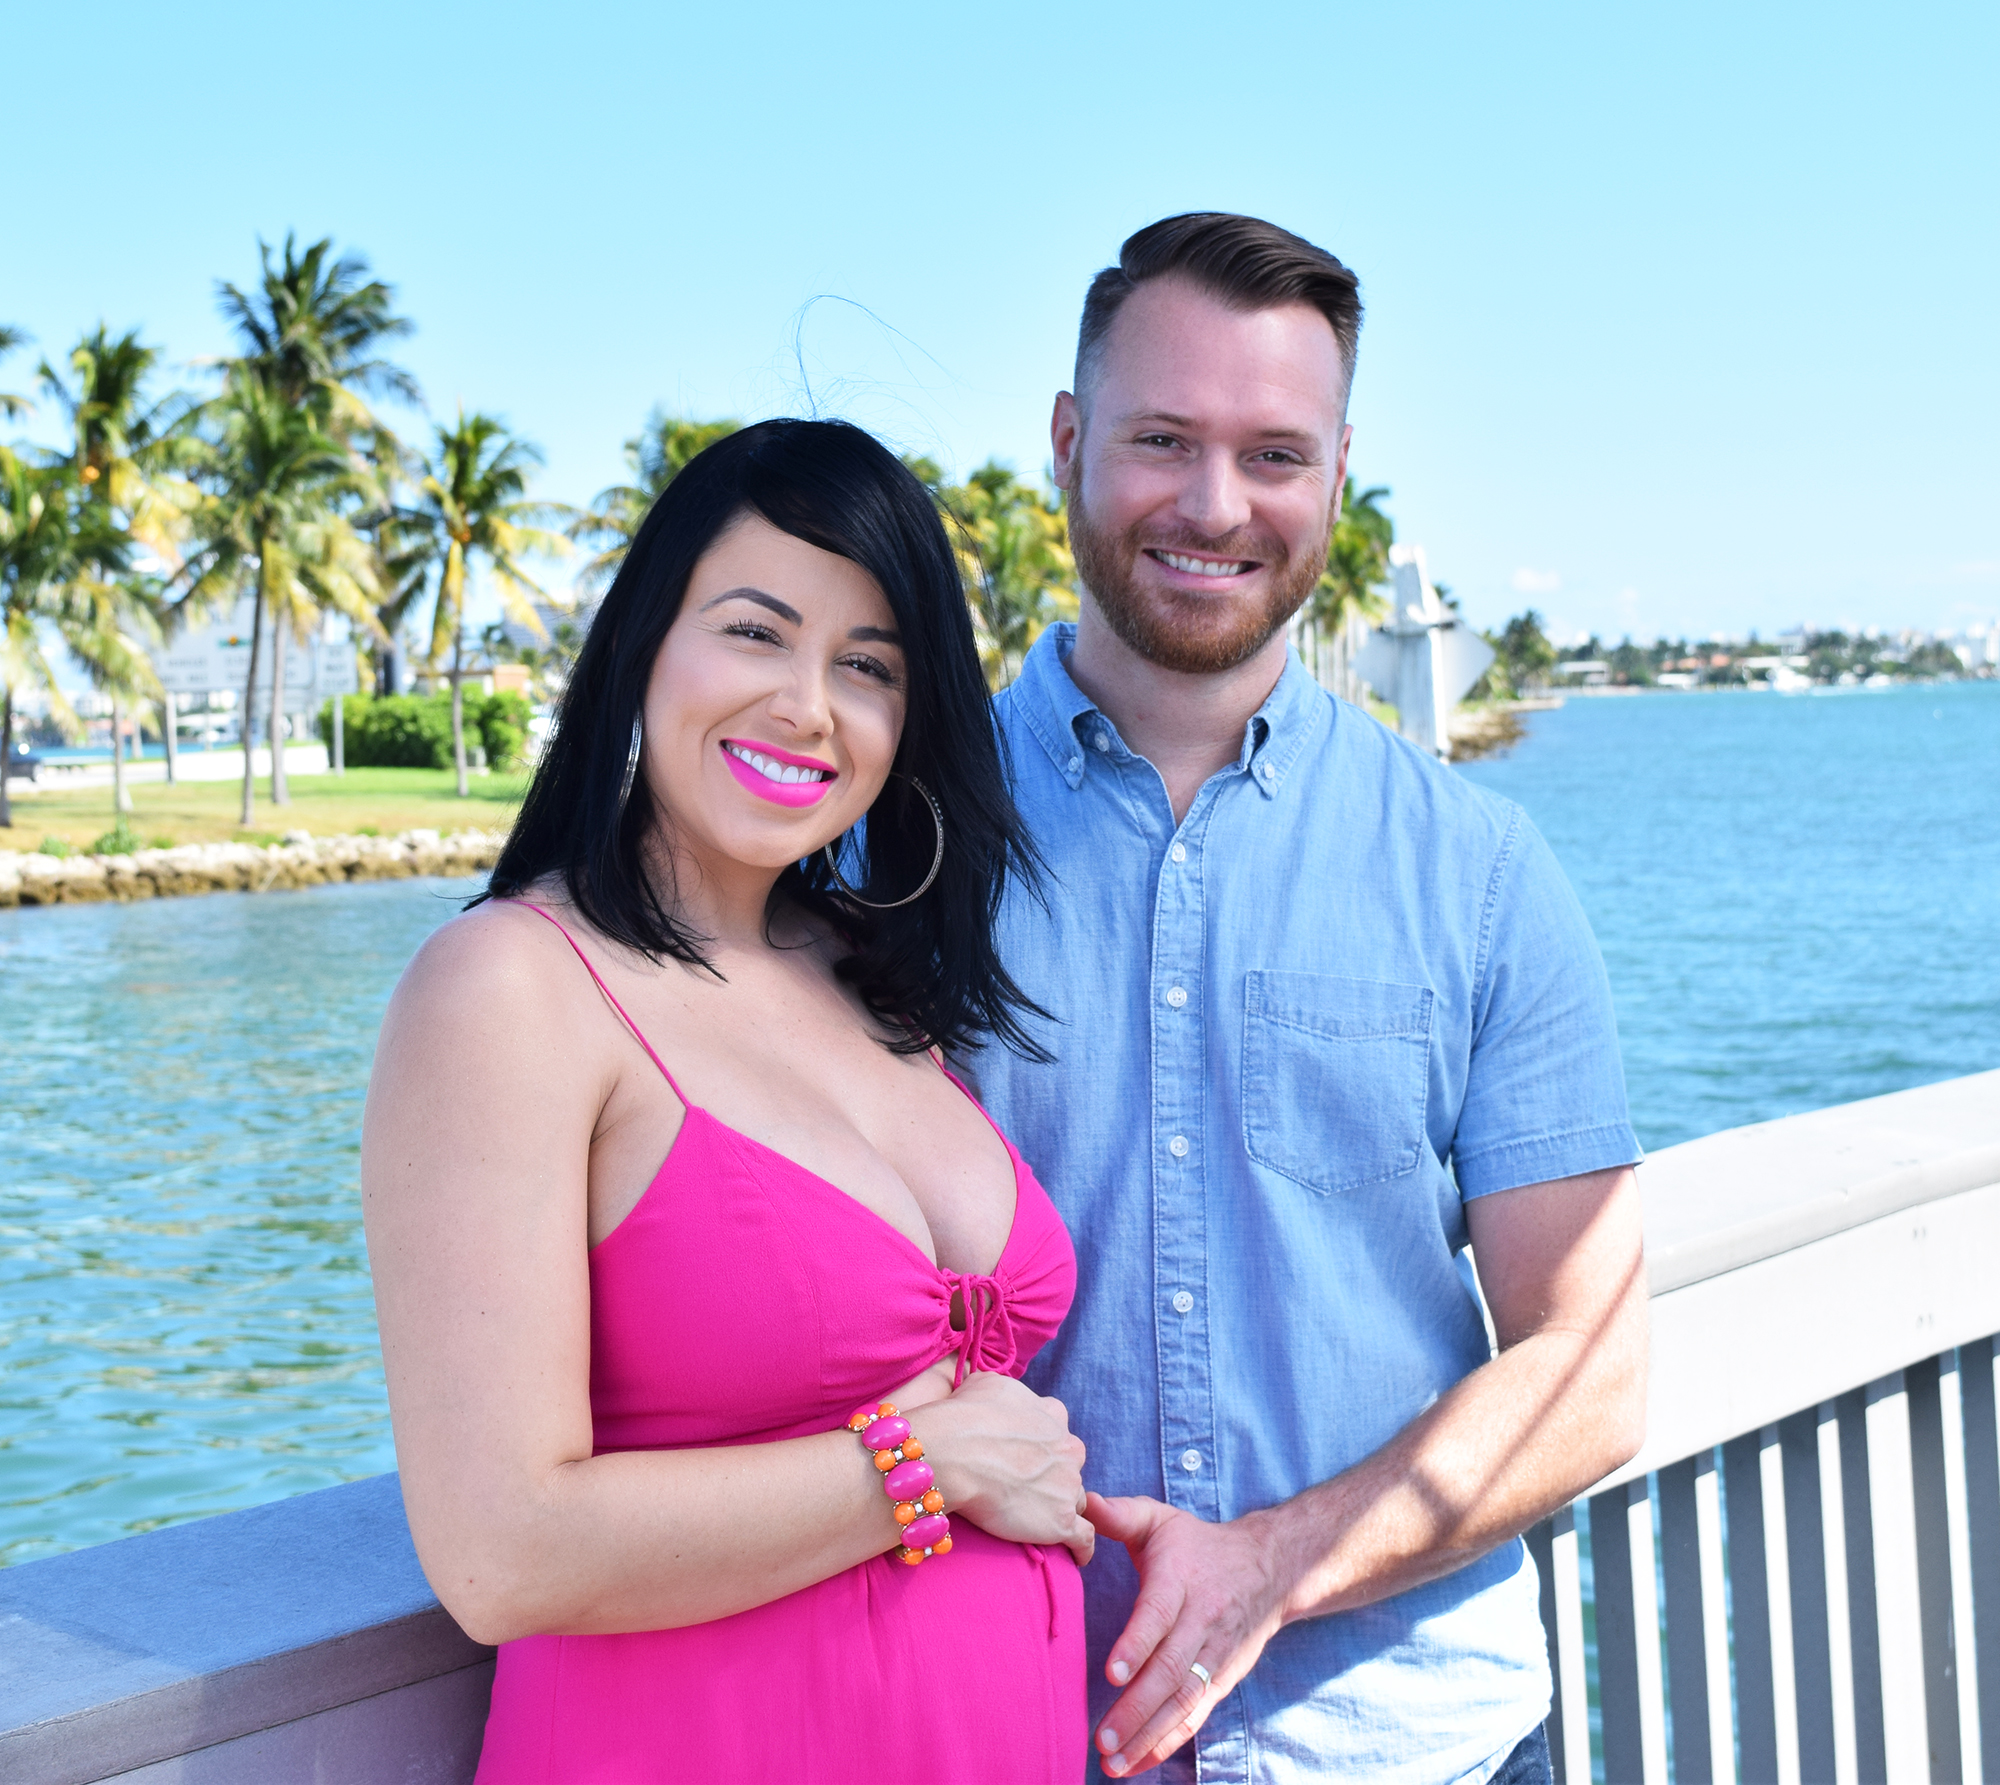 90 day fiance happily ever after cast 2017